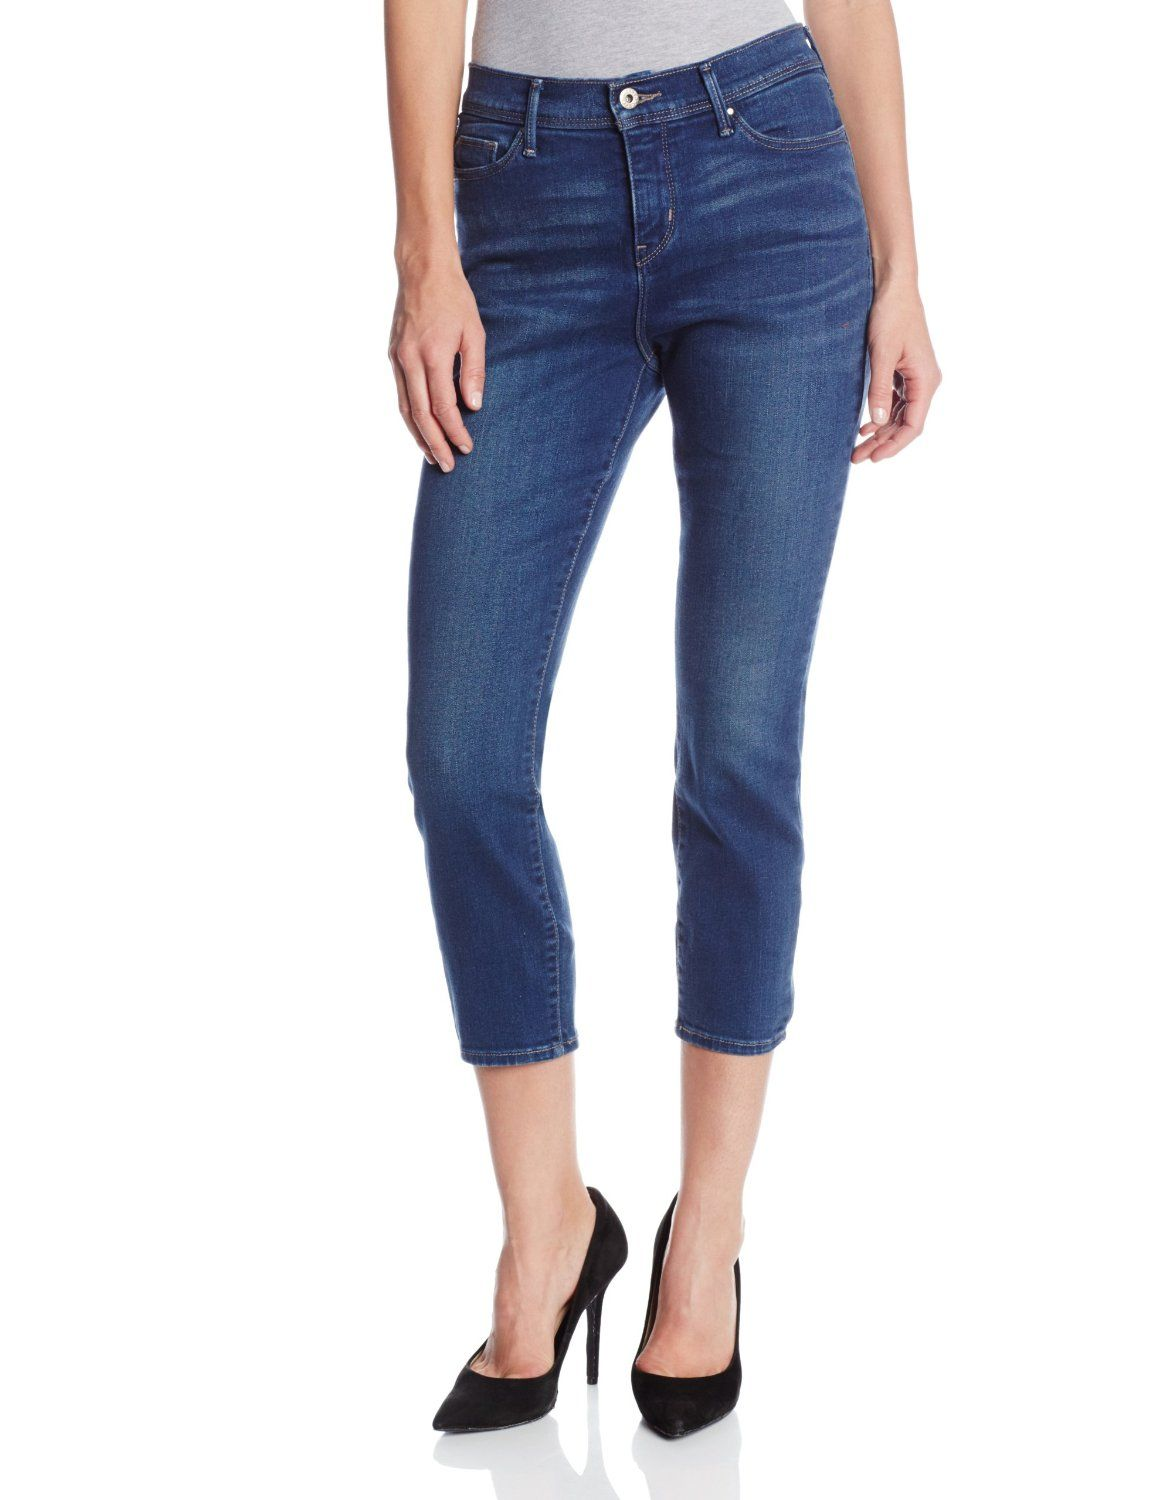 2eacb3b20119e Levi's Women's 512 Perfectly Slimming Skinny Crop Jean ($34.91) - http://